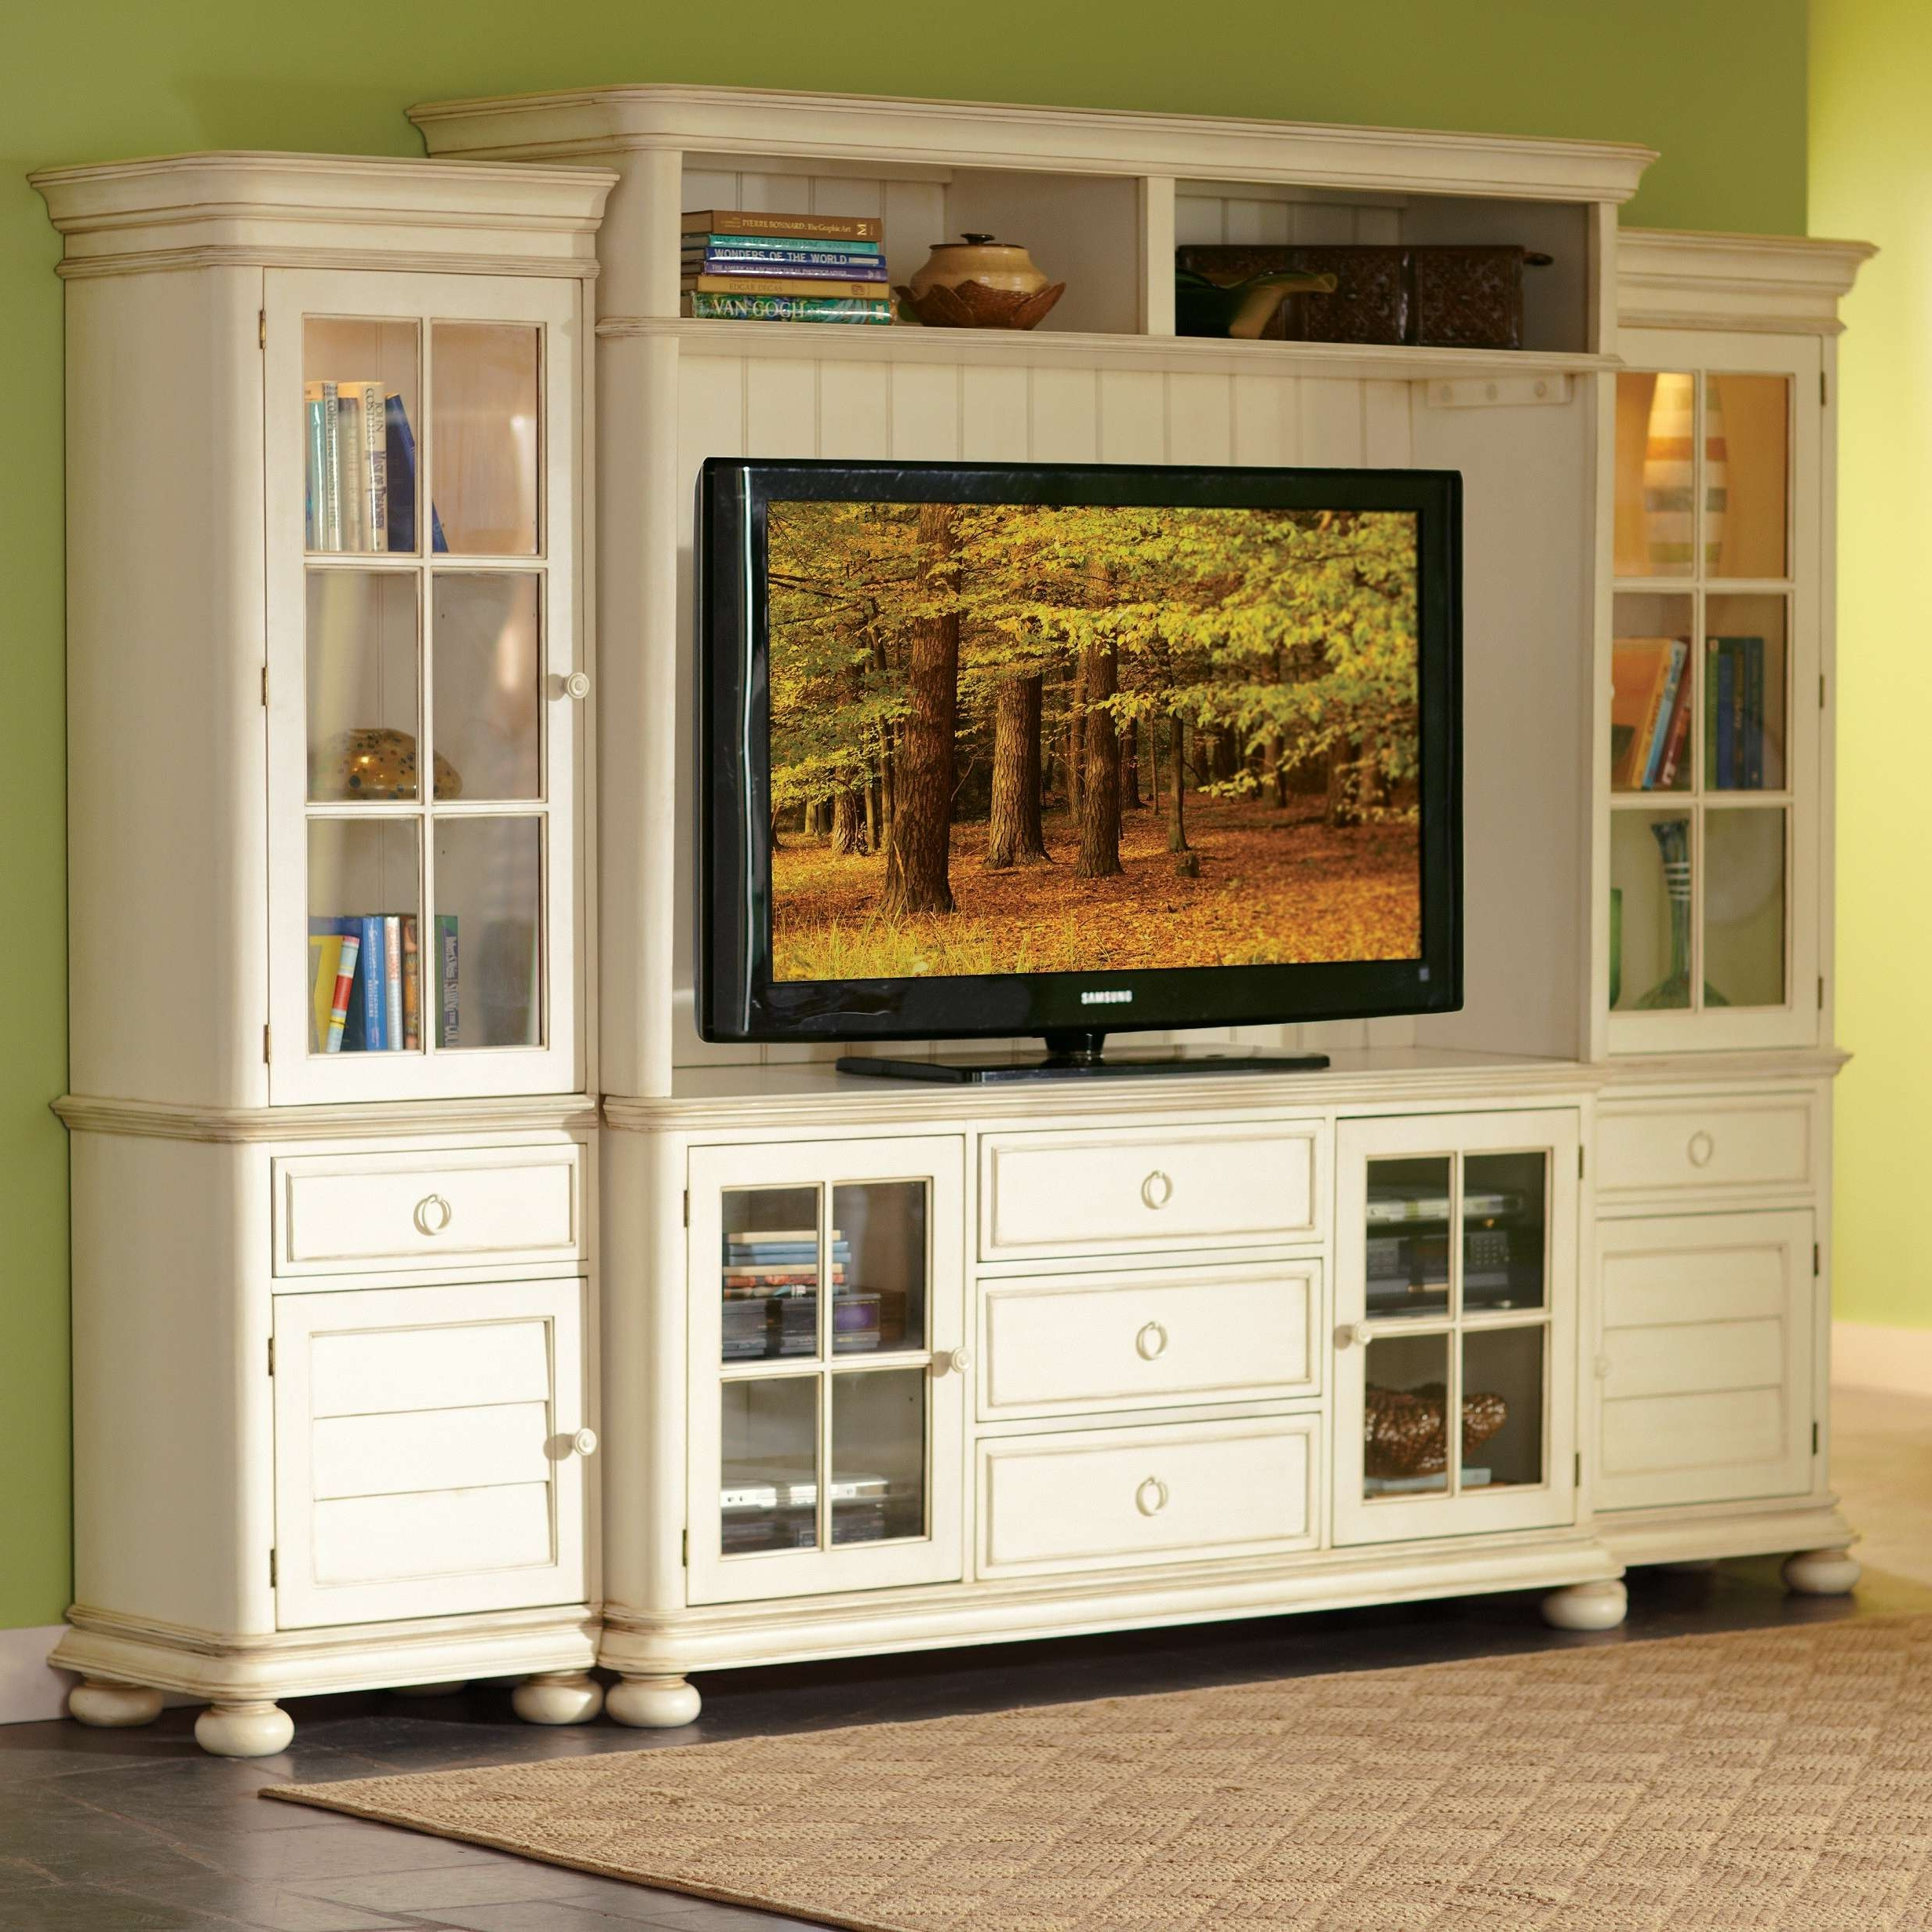 Beautiful Enclosed Tv Cabinet 2 Stands Cheap With Doors And Glass With Regard To Best And Newest Fancy Tv Cabinets (View 20 of 20)